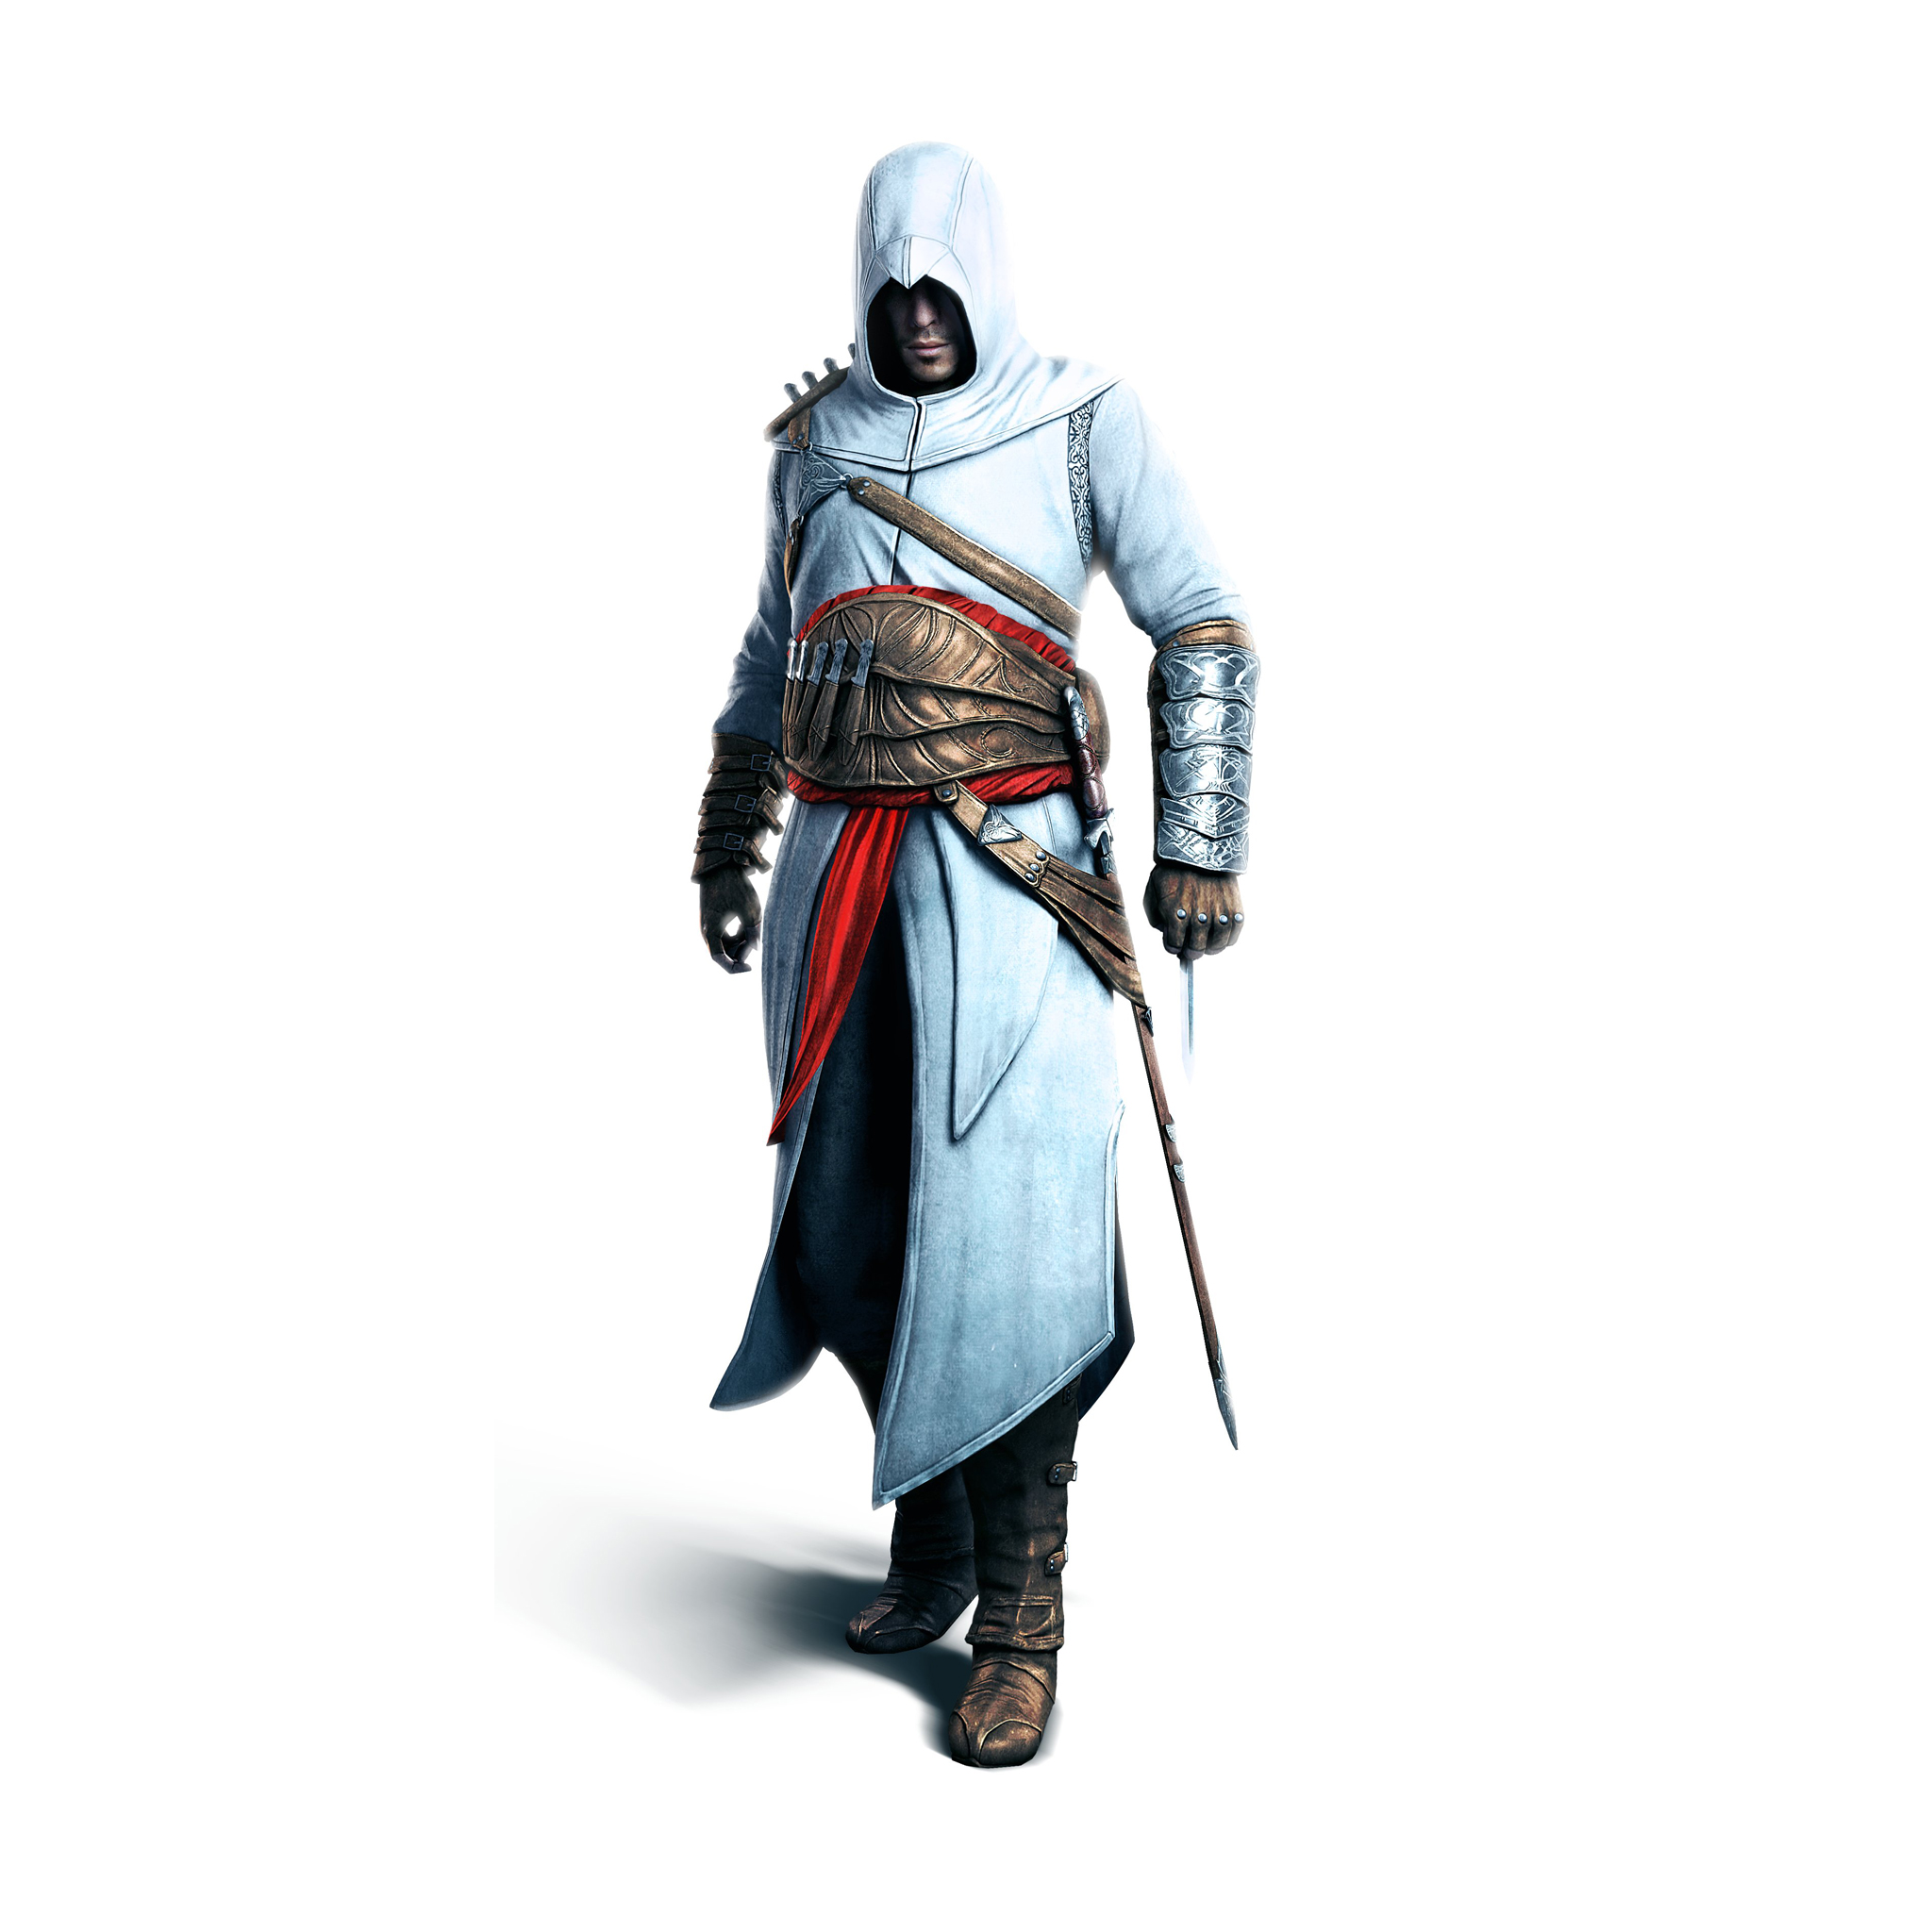 Assassin Screed 3 Wallpapers iPad Assassins Creed   iPad